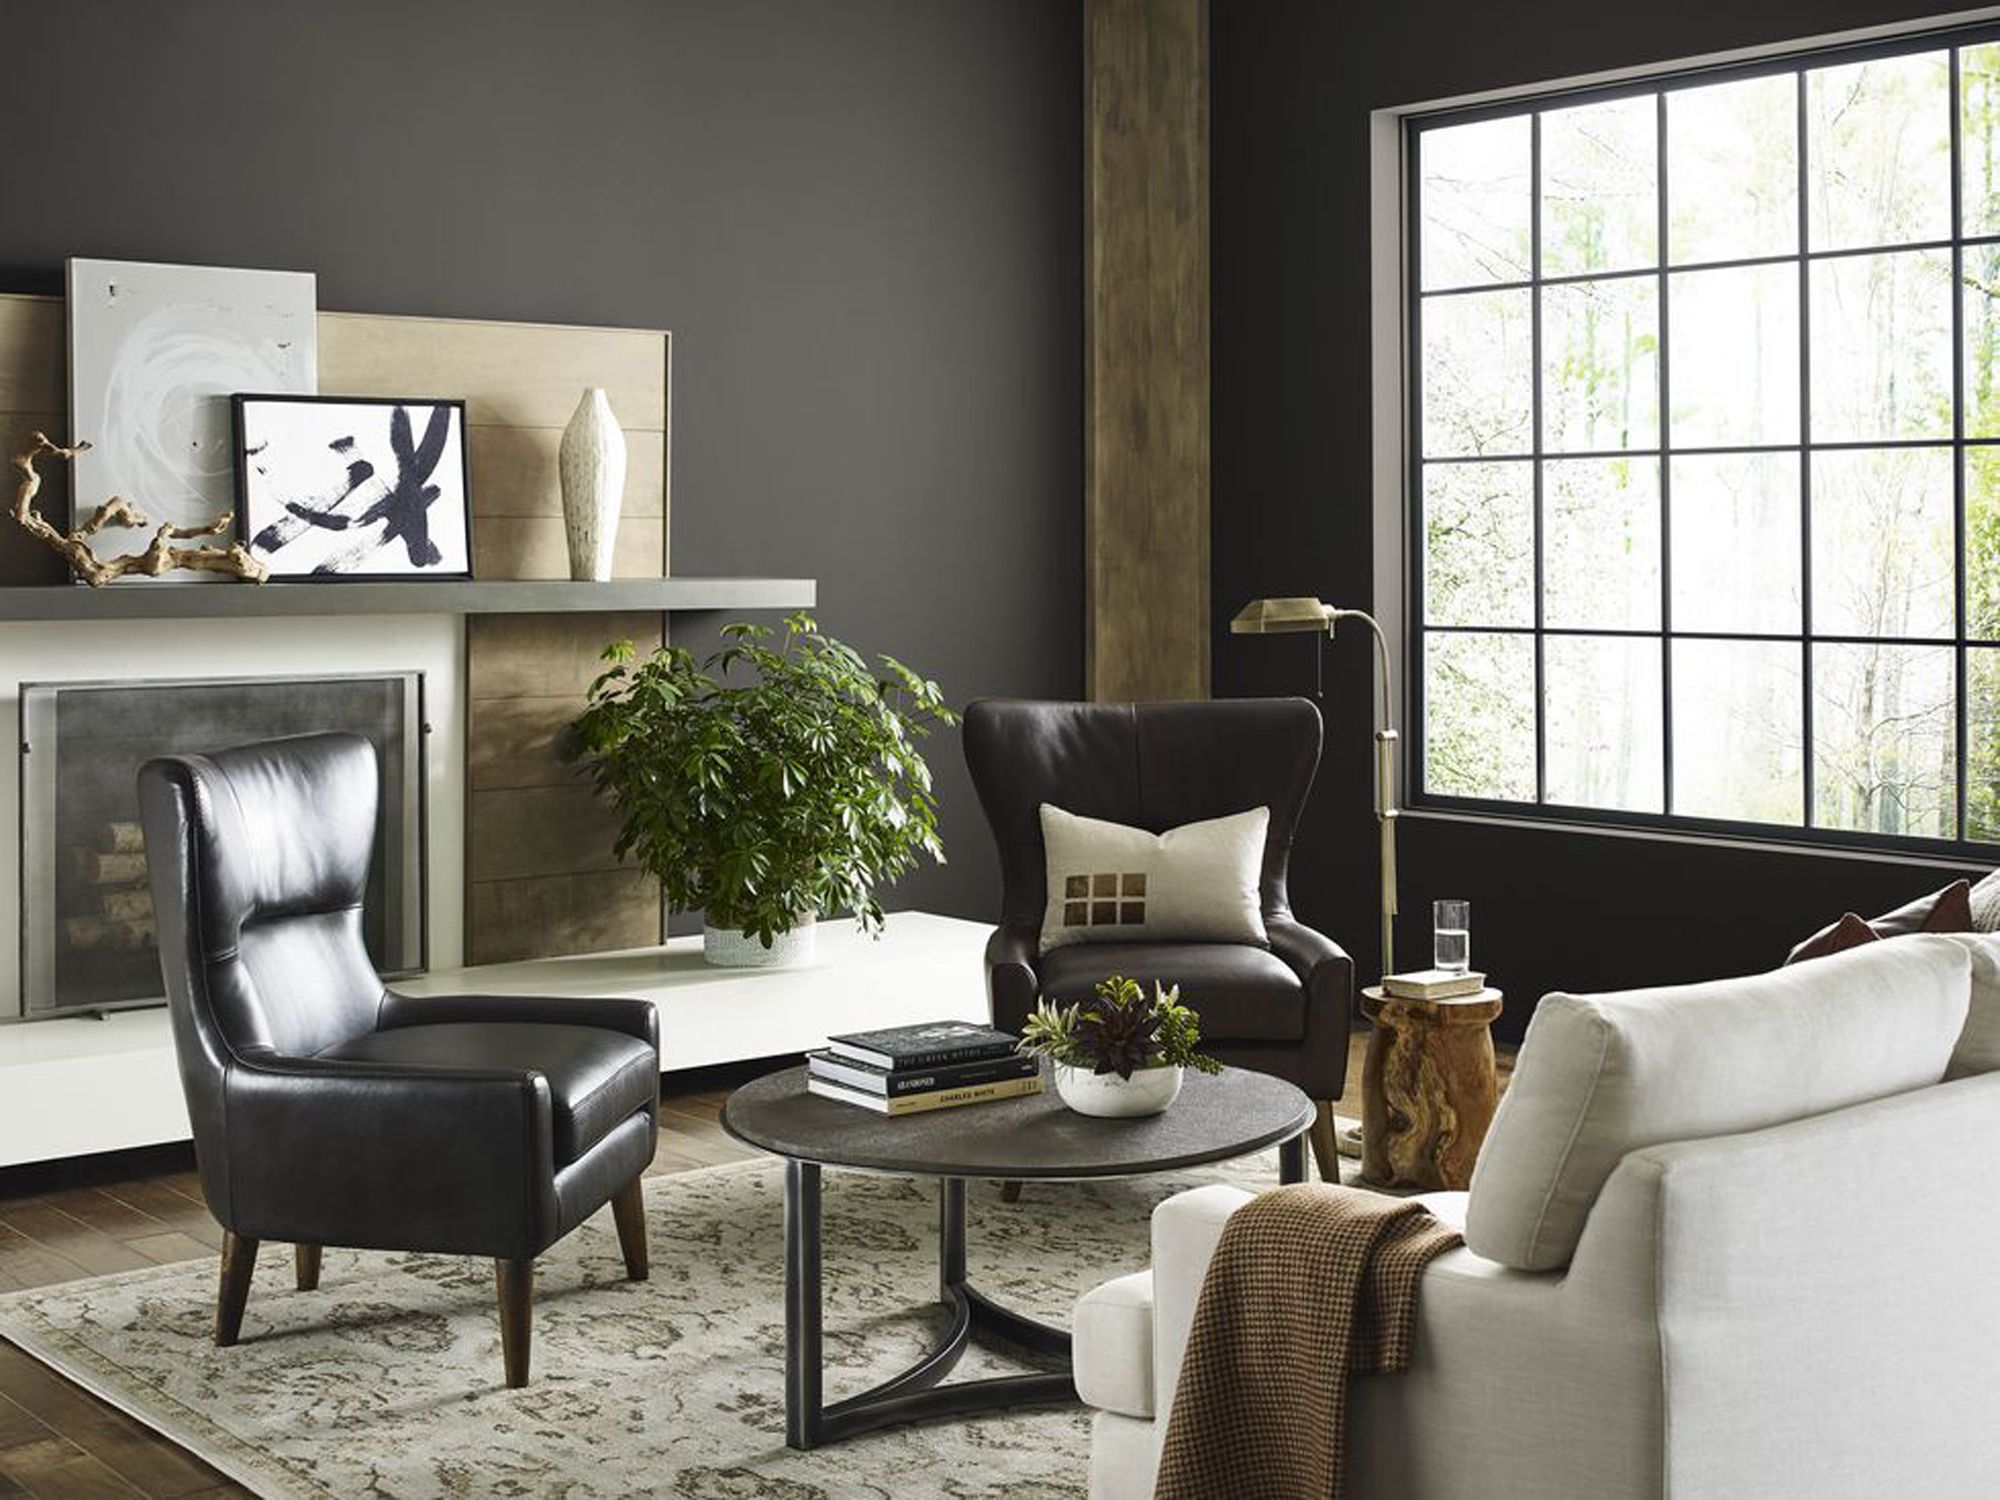 Sherwin Williams Announces Urbane Bronze As 2021 Color Of The Year